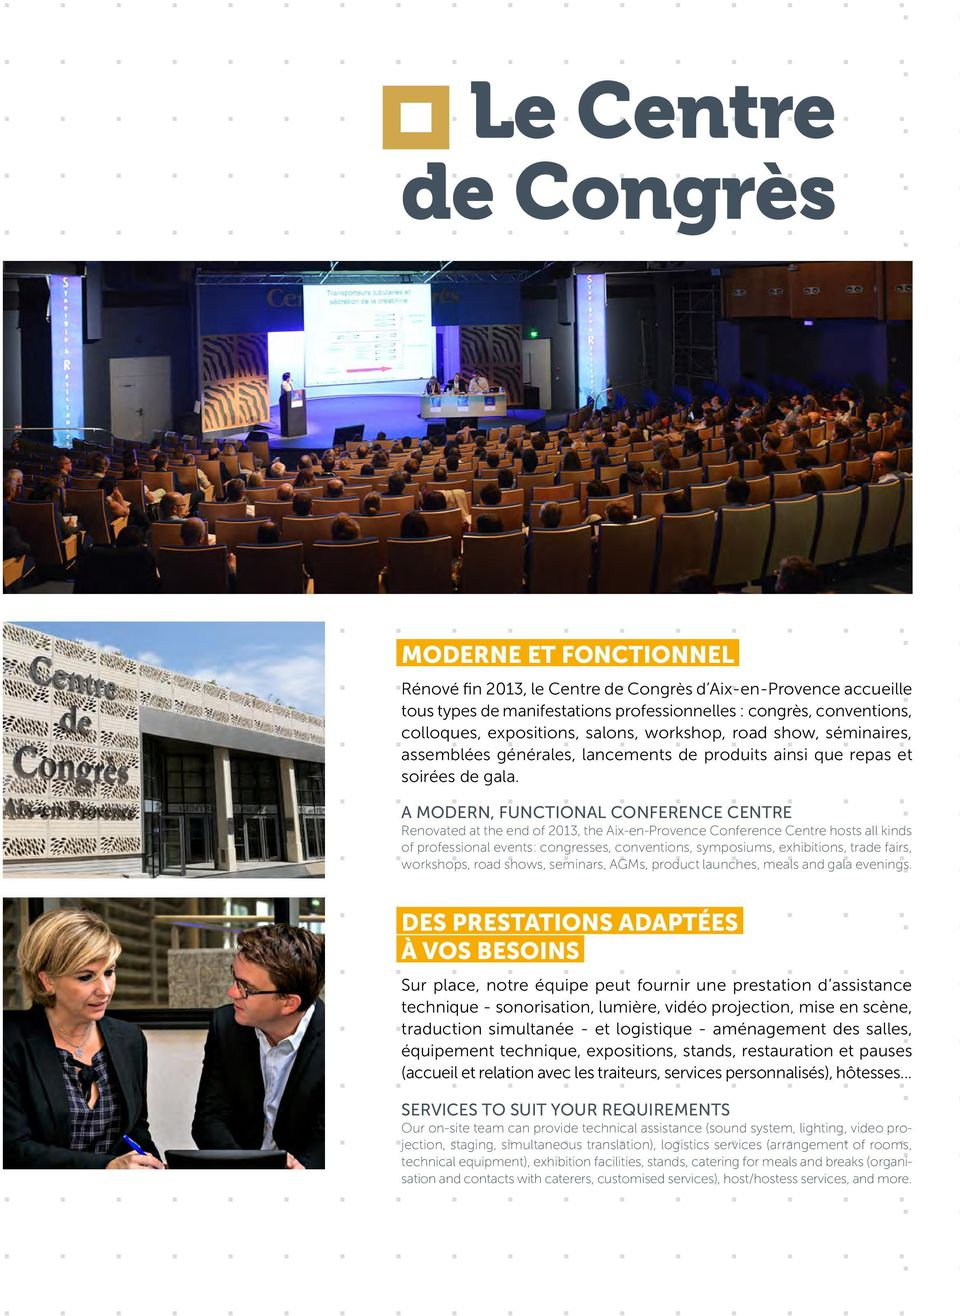 A MODERN, FUNCTIONAL CONFERENCE CENTRE Renovated at the end of 2013, the Aix-en-Provence Conference Centre hosts all kinds of professional events: congresses, conventions, symposiums, exhibitions,